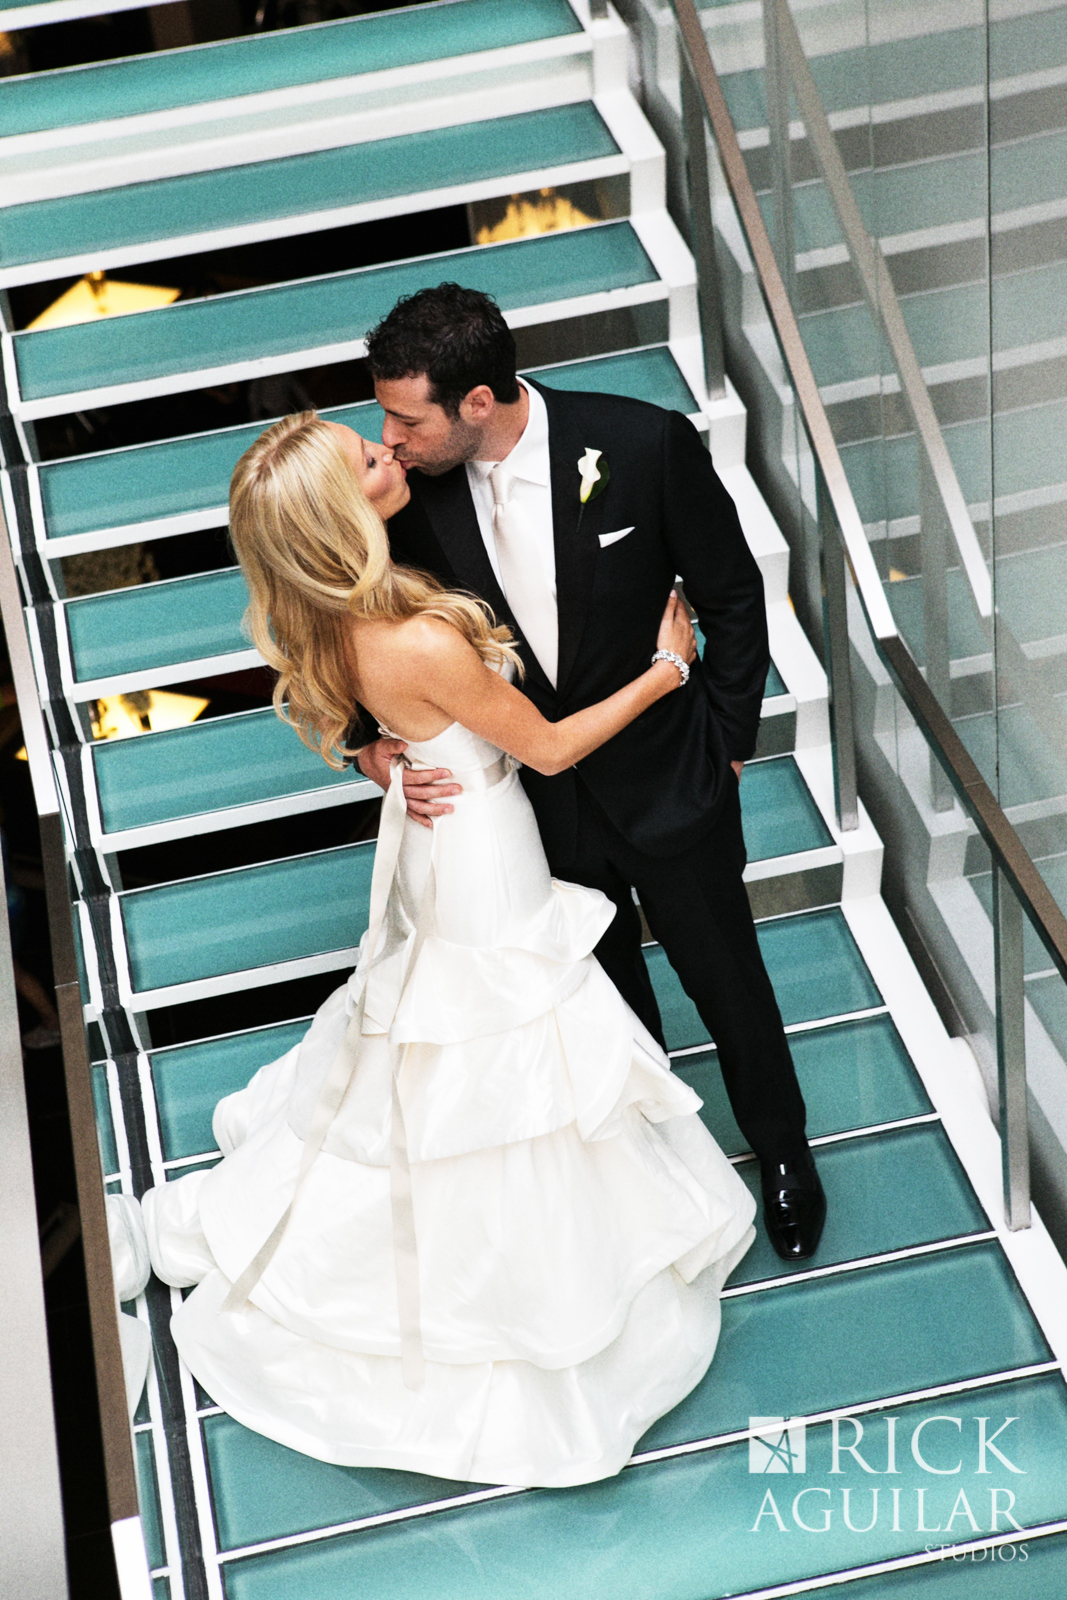 sofitel-chicago-hotel-wedding-modern-luxury-wedding-hayley-paige-pearl-gown-wedding-artist-ben-keys-live-wedding-painter